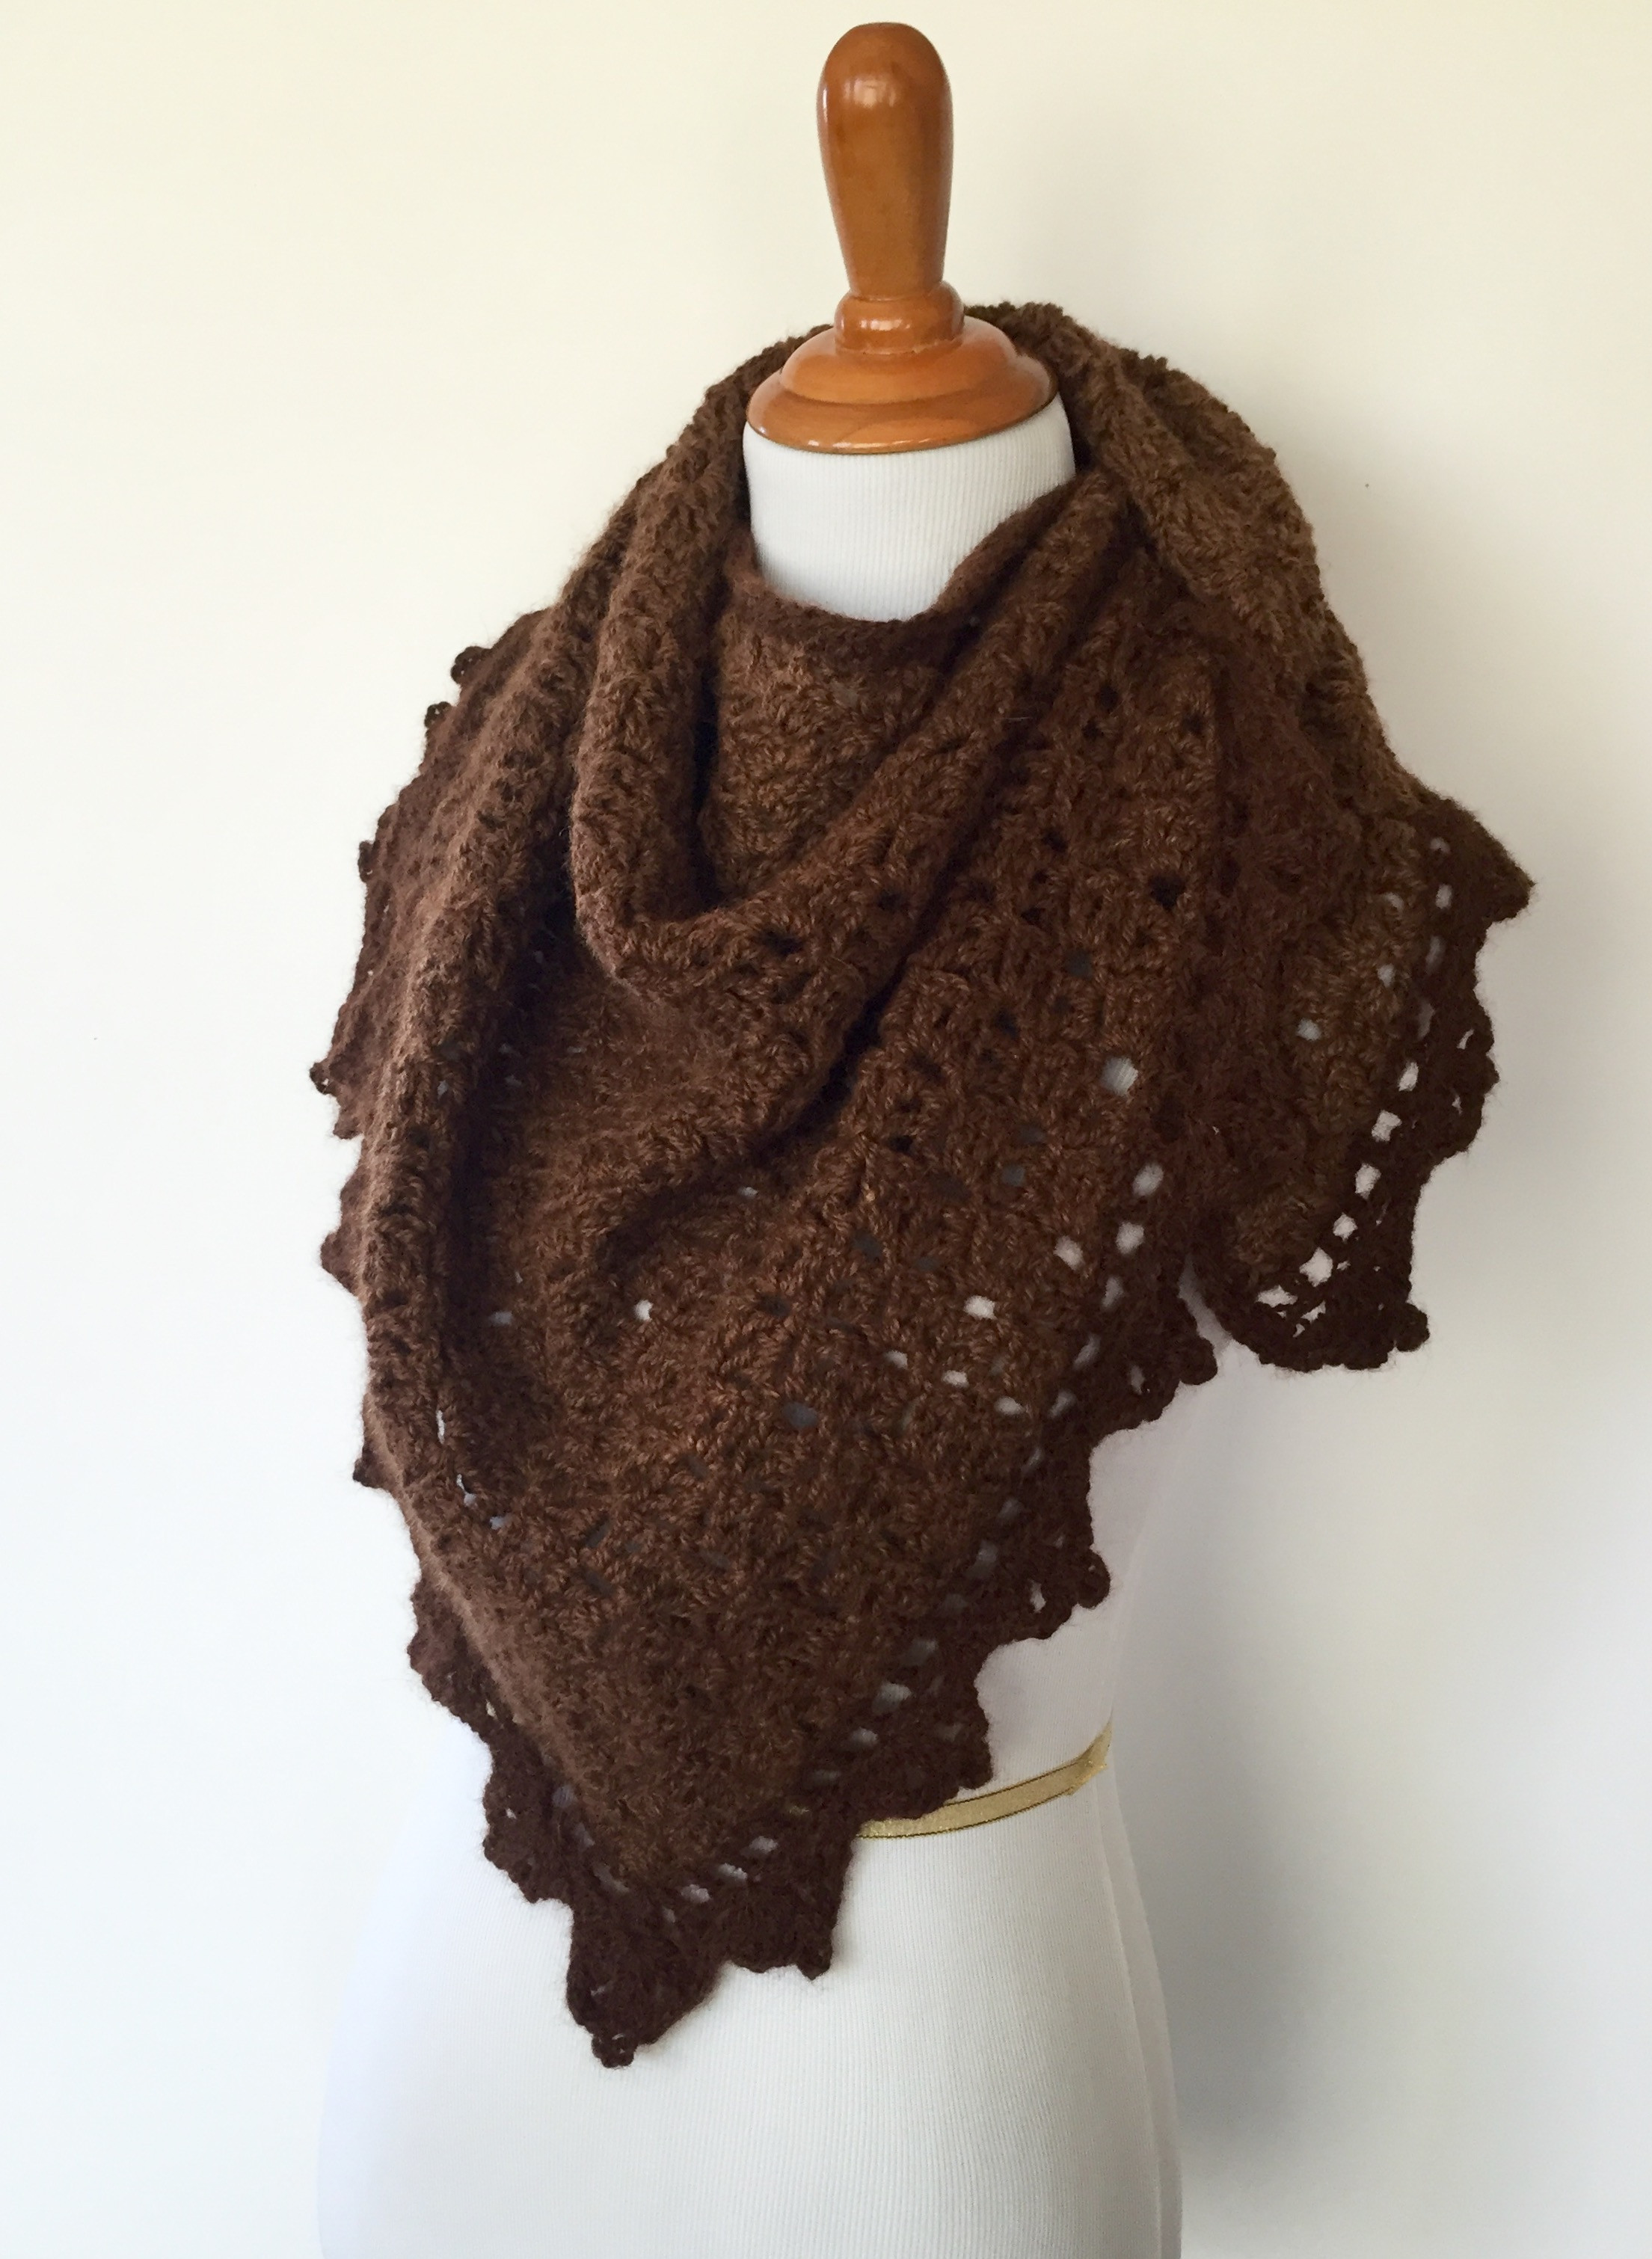 Inspirational Triangle Shawl Crochet Pattern by Little Monkey S Designs Triangle Shawl Of Lovely 41 Pics Triangle Shawl